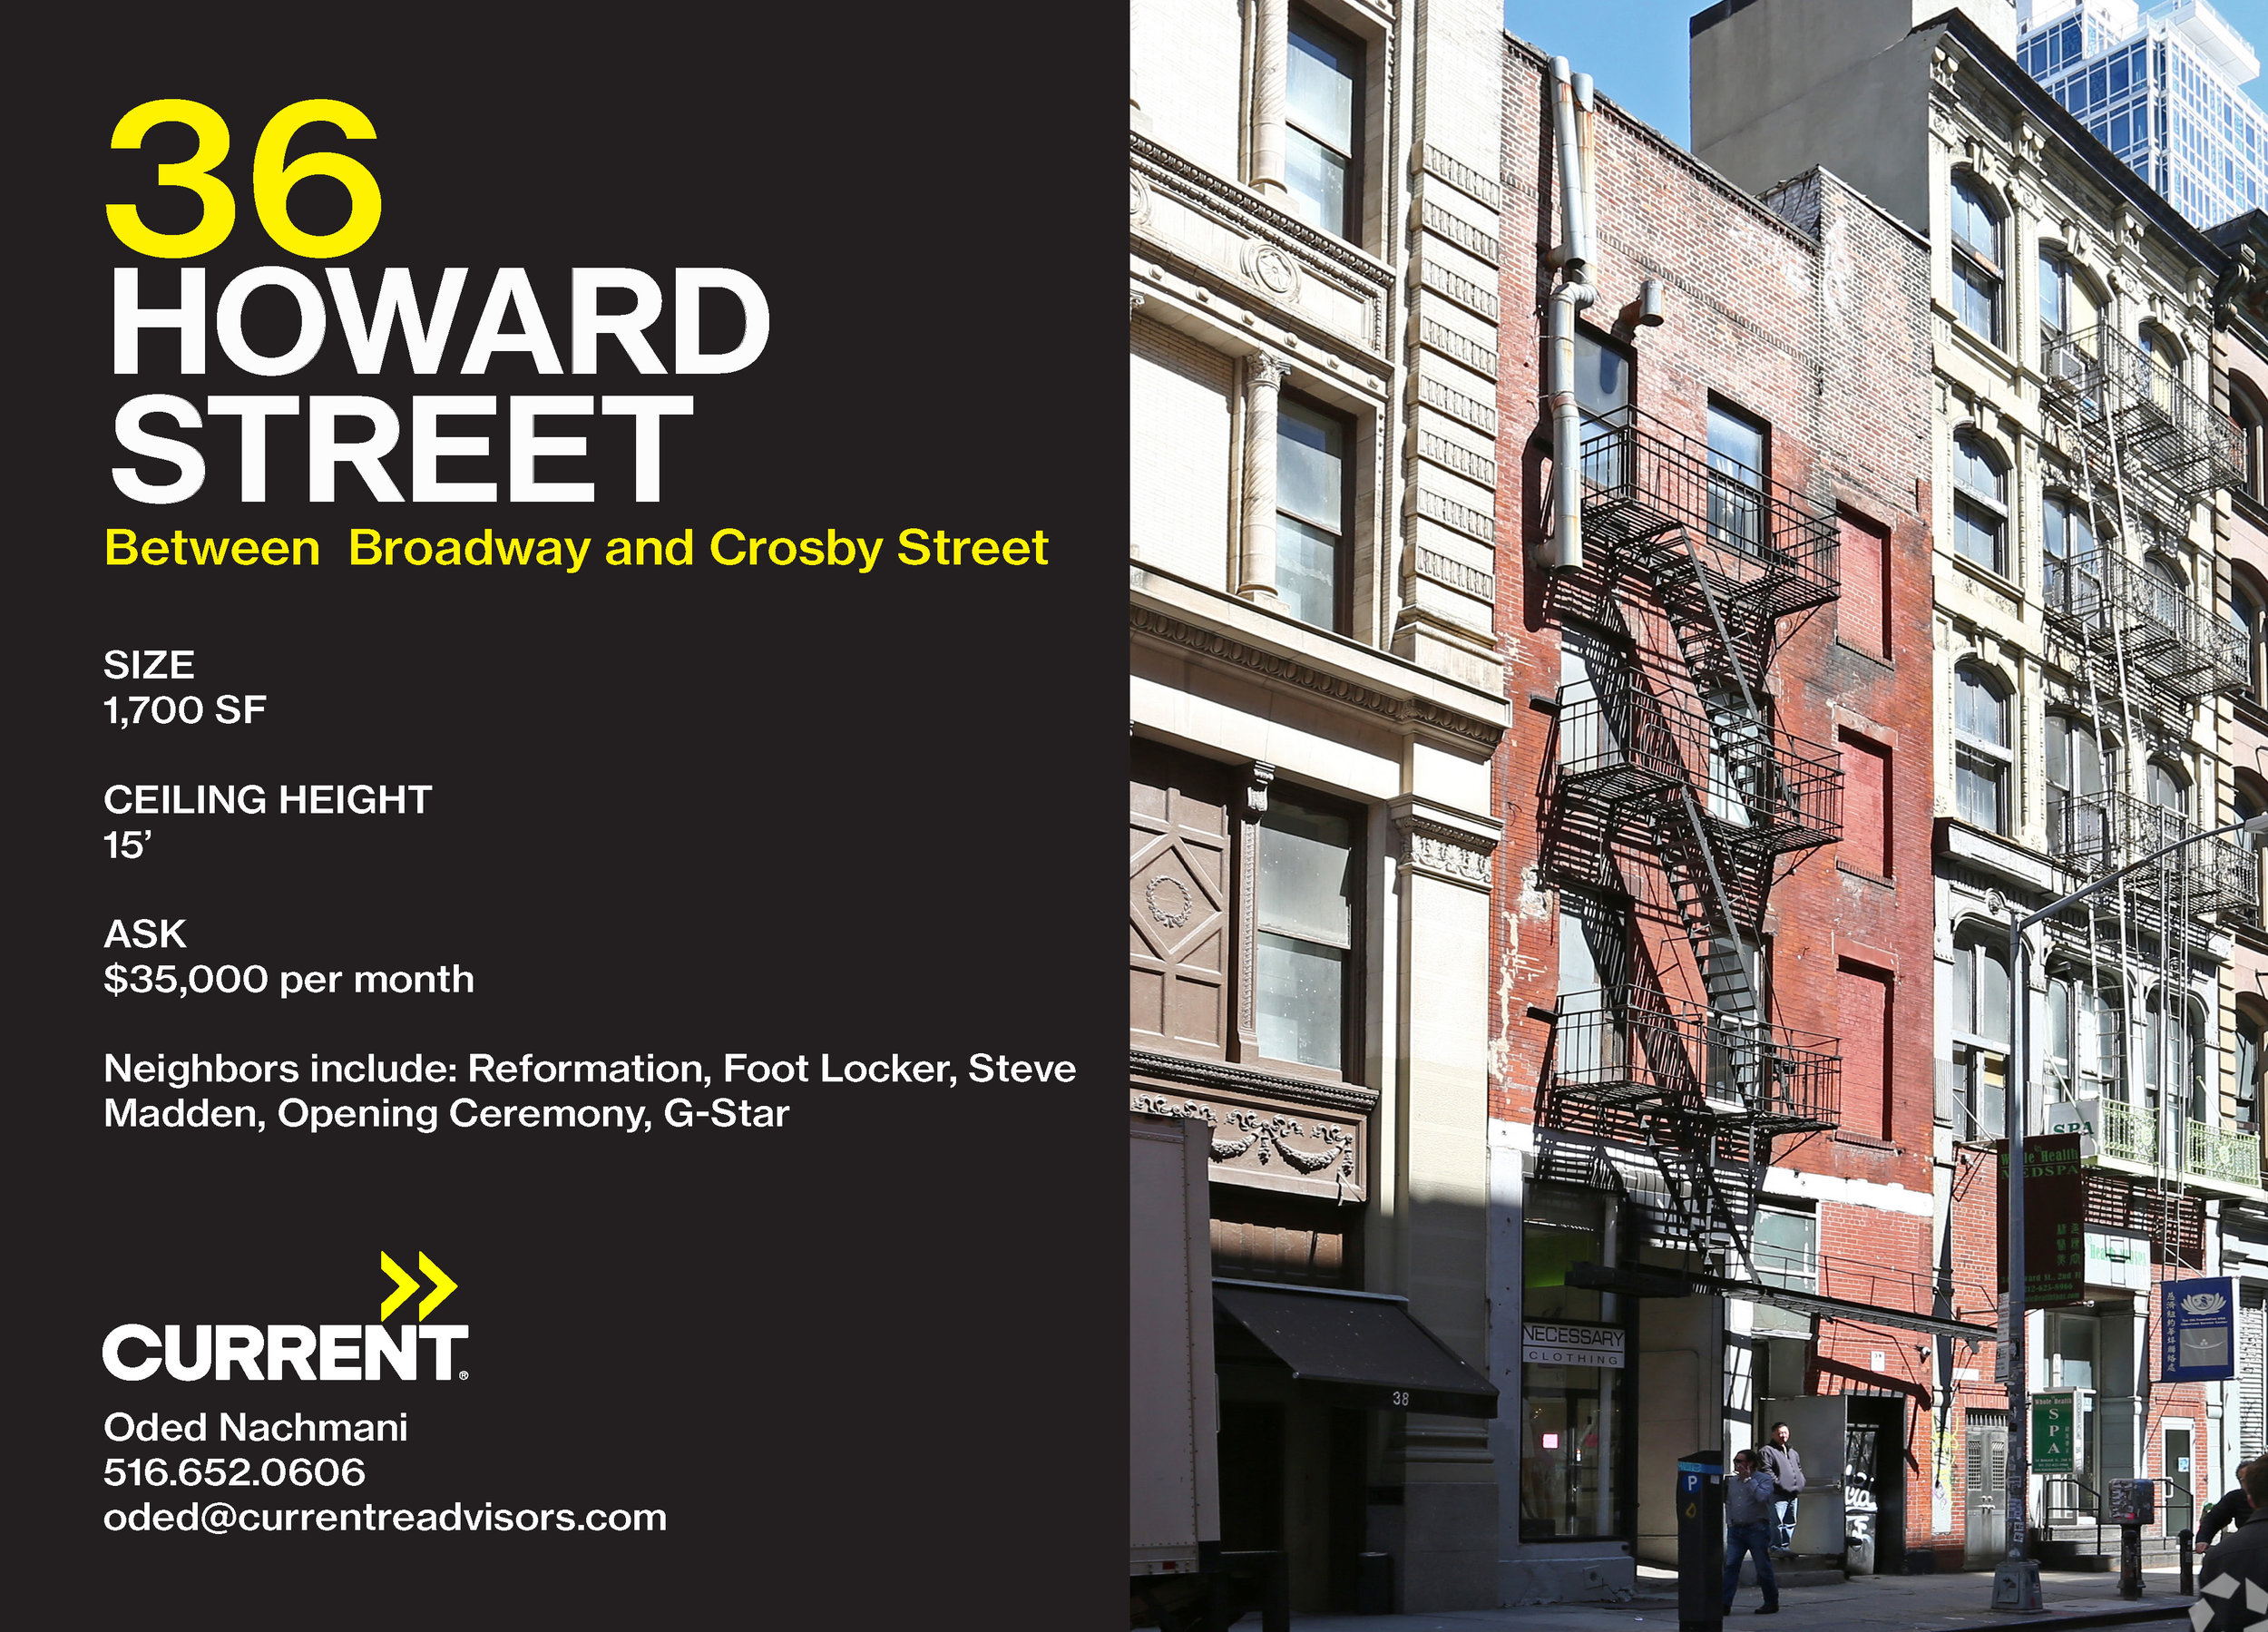 36 Howard Street Flyer.jpg